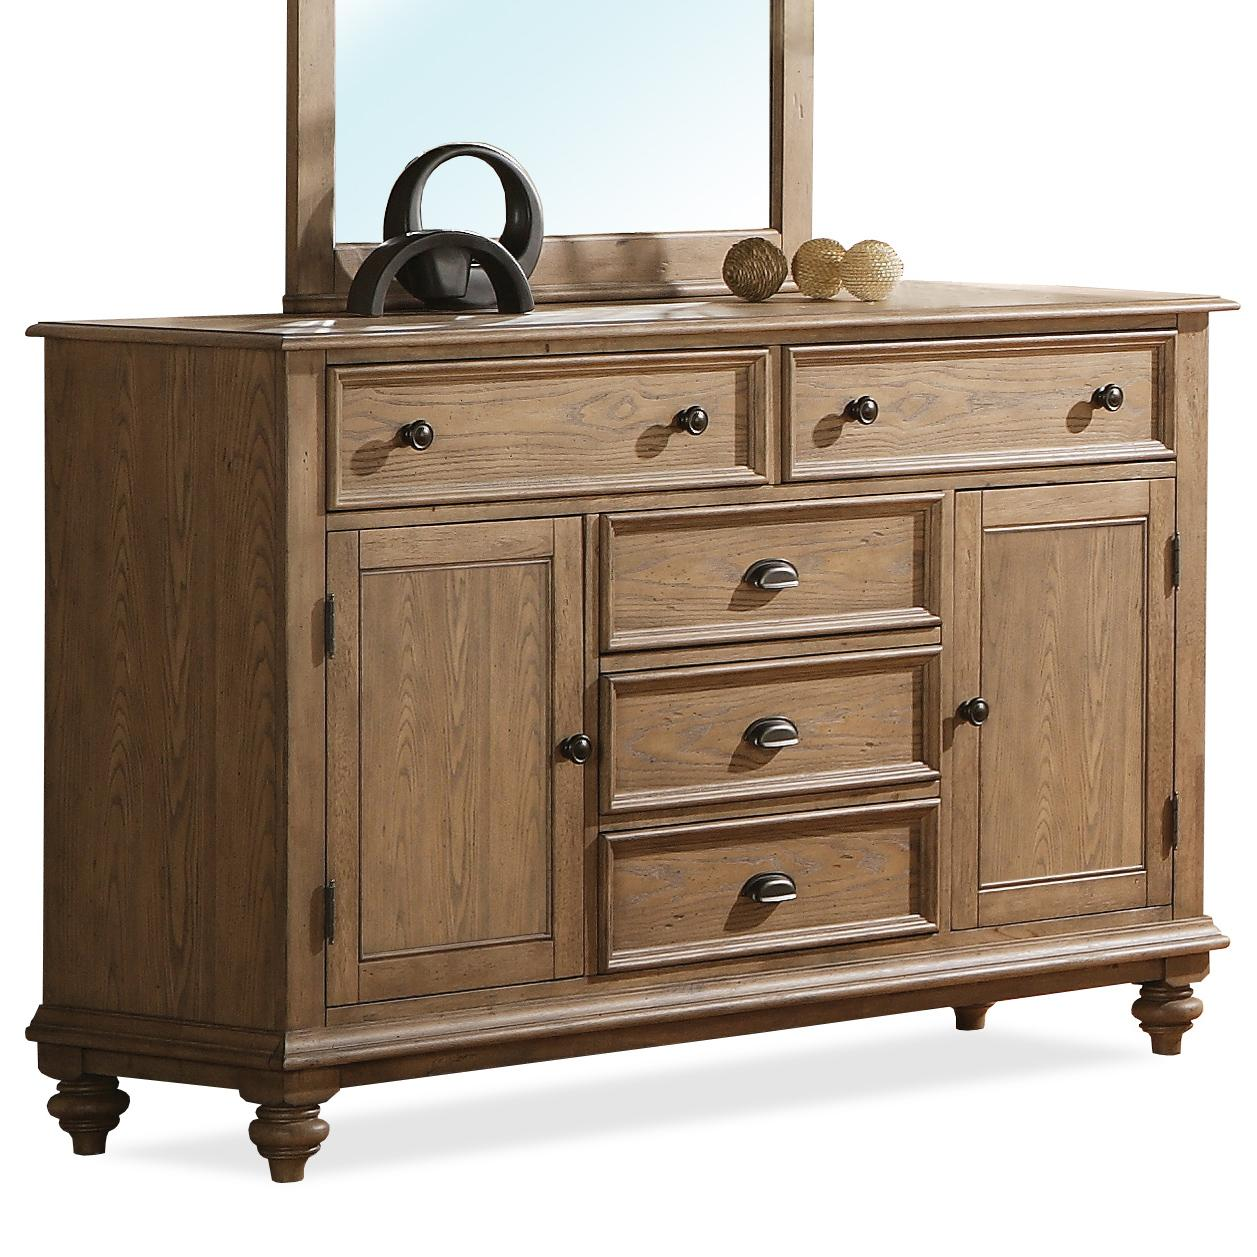 Riverside Furniture Coventry Panel Door Dresser With 5 Drawers Knight Furniture Mattress